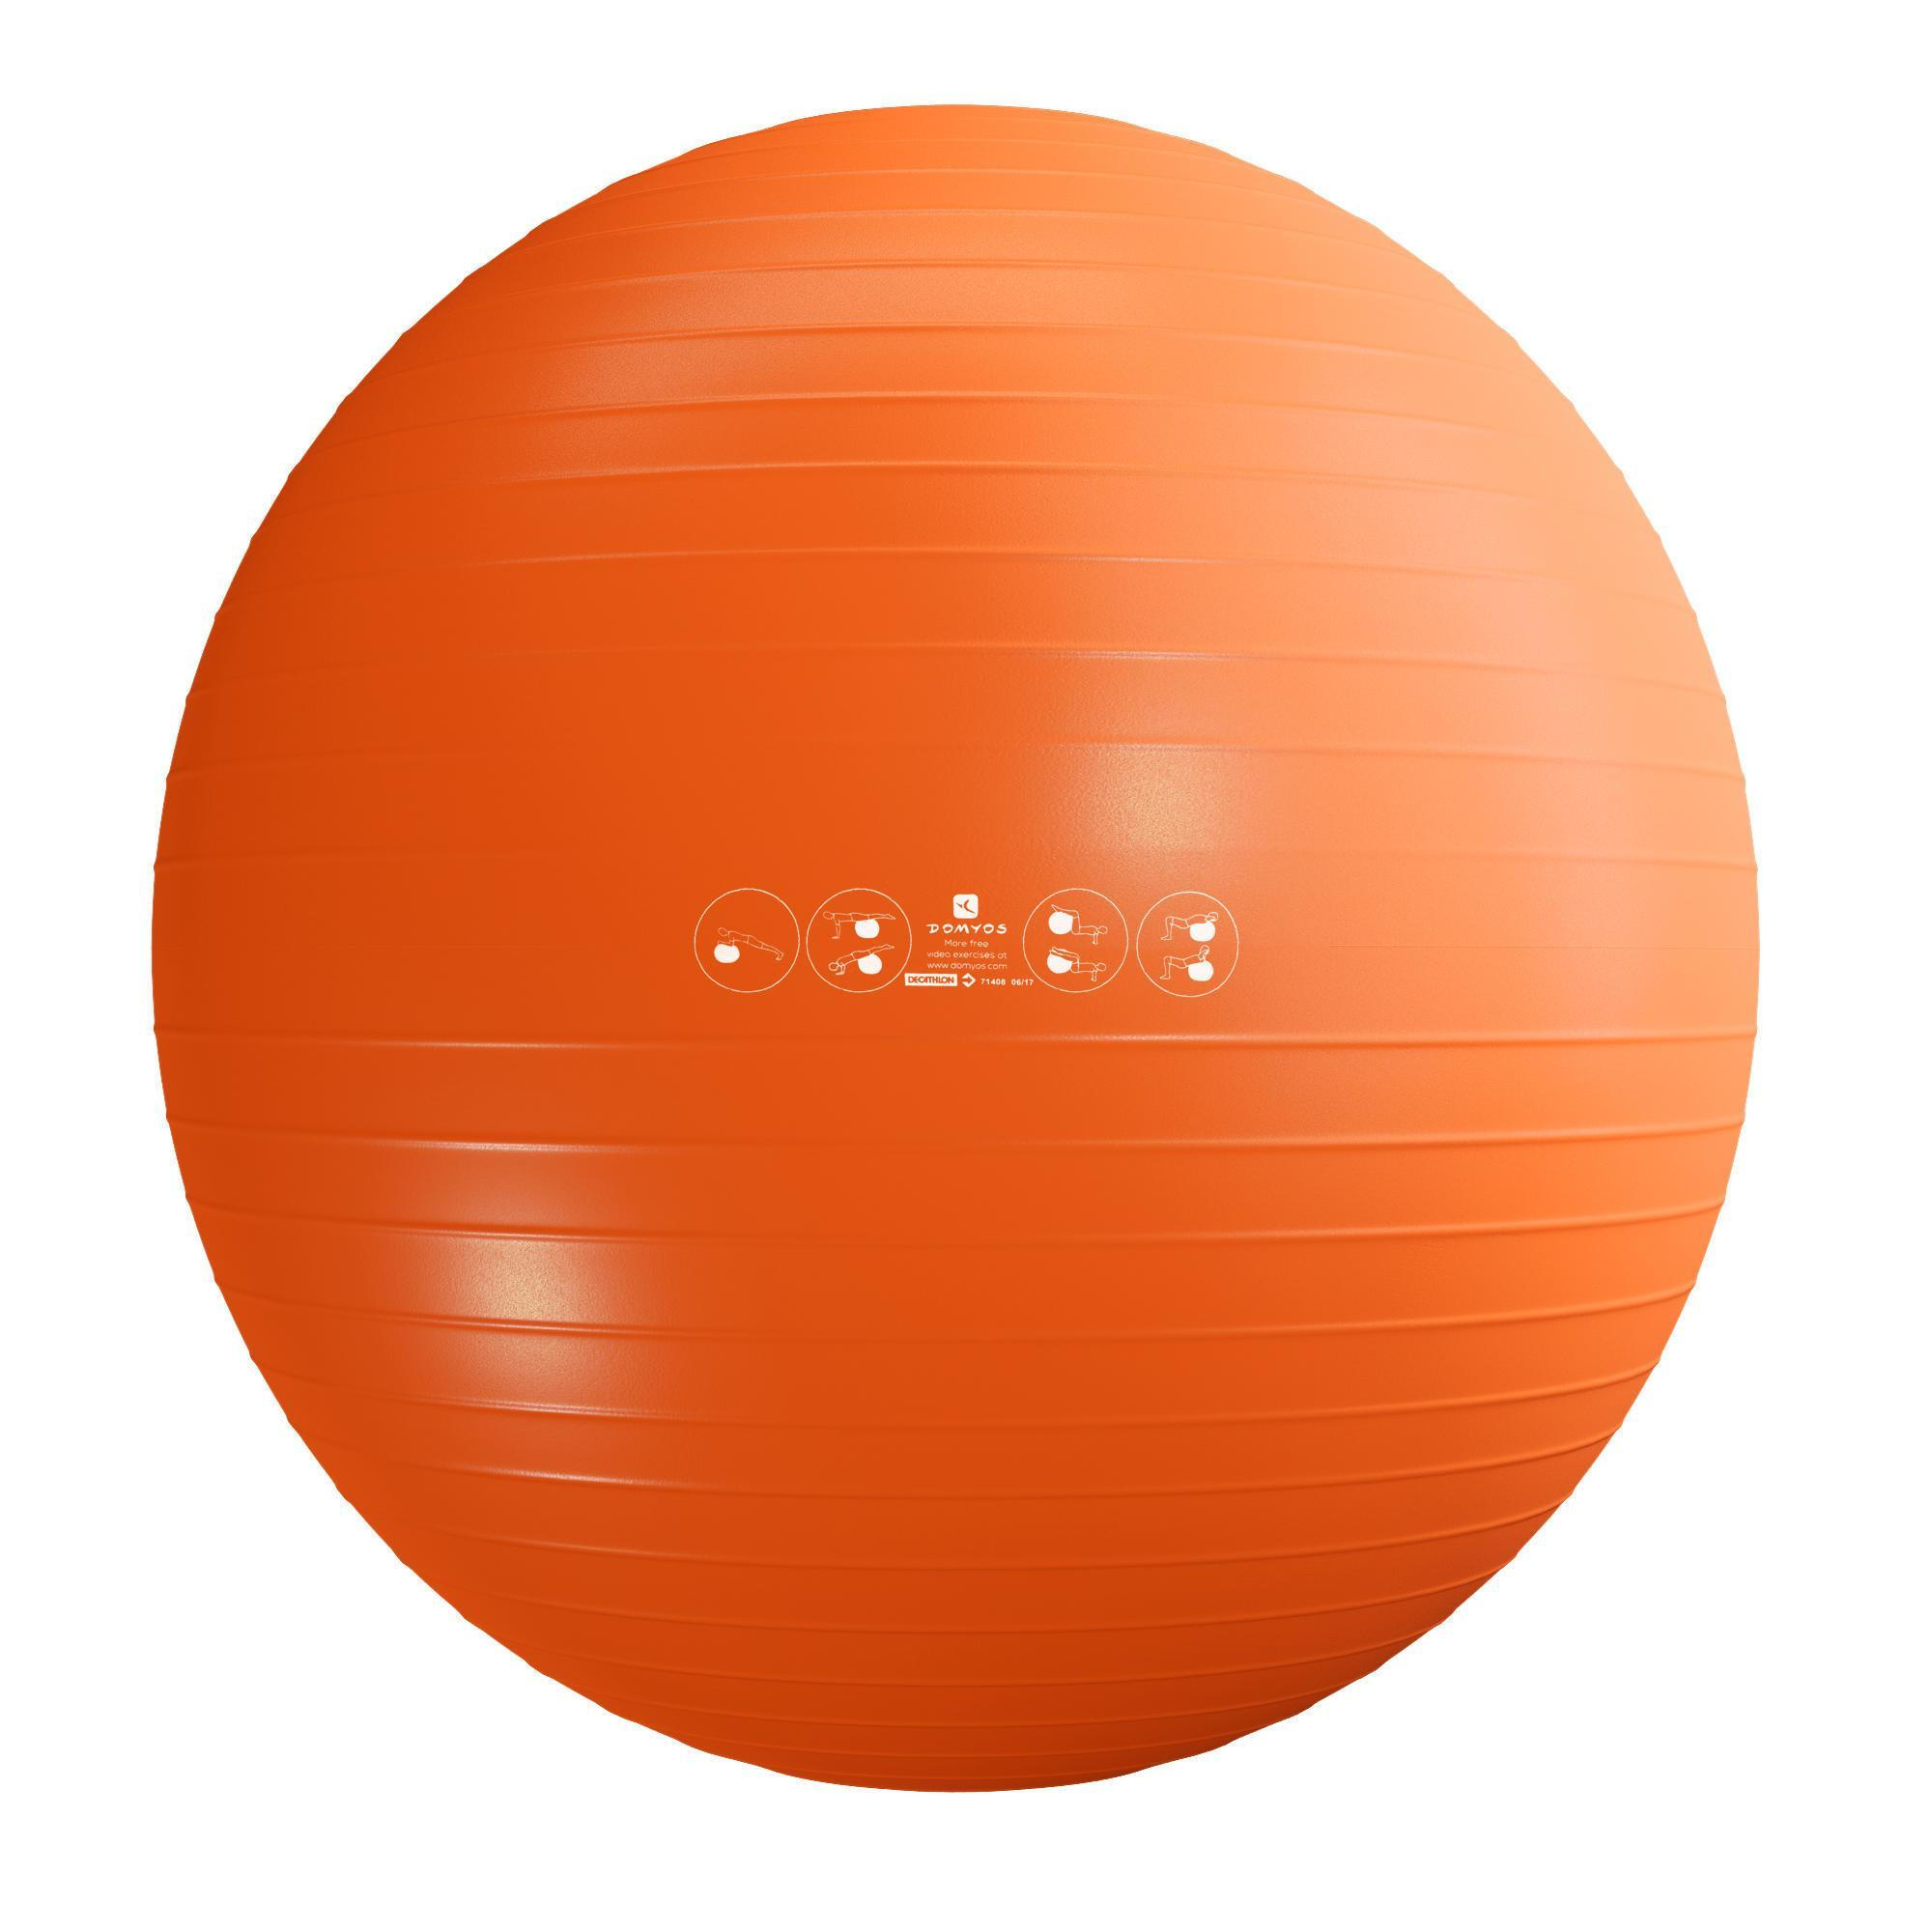 4be898fa9d199 Swiss ball antirreventÓn pilates large domyos decathlon jpg 2000x2000 Swiss  ball